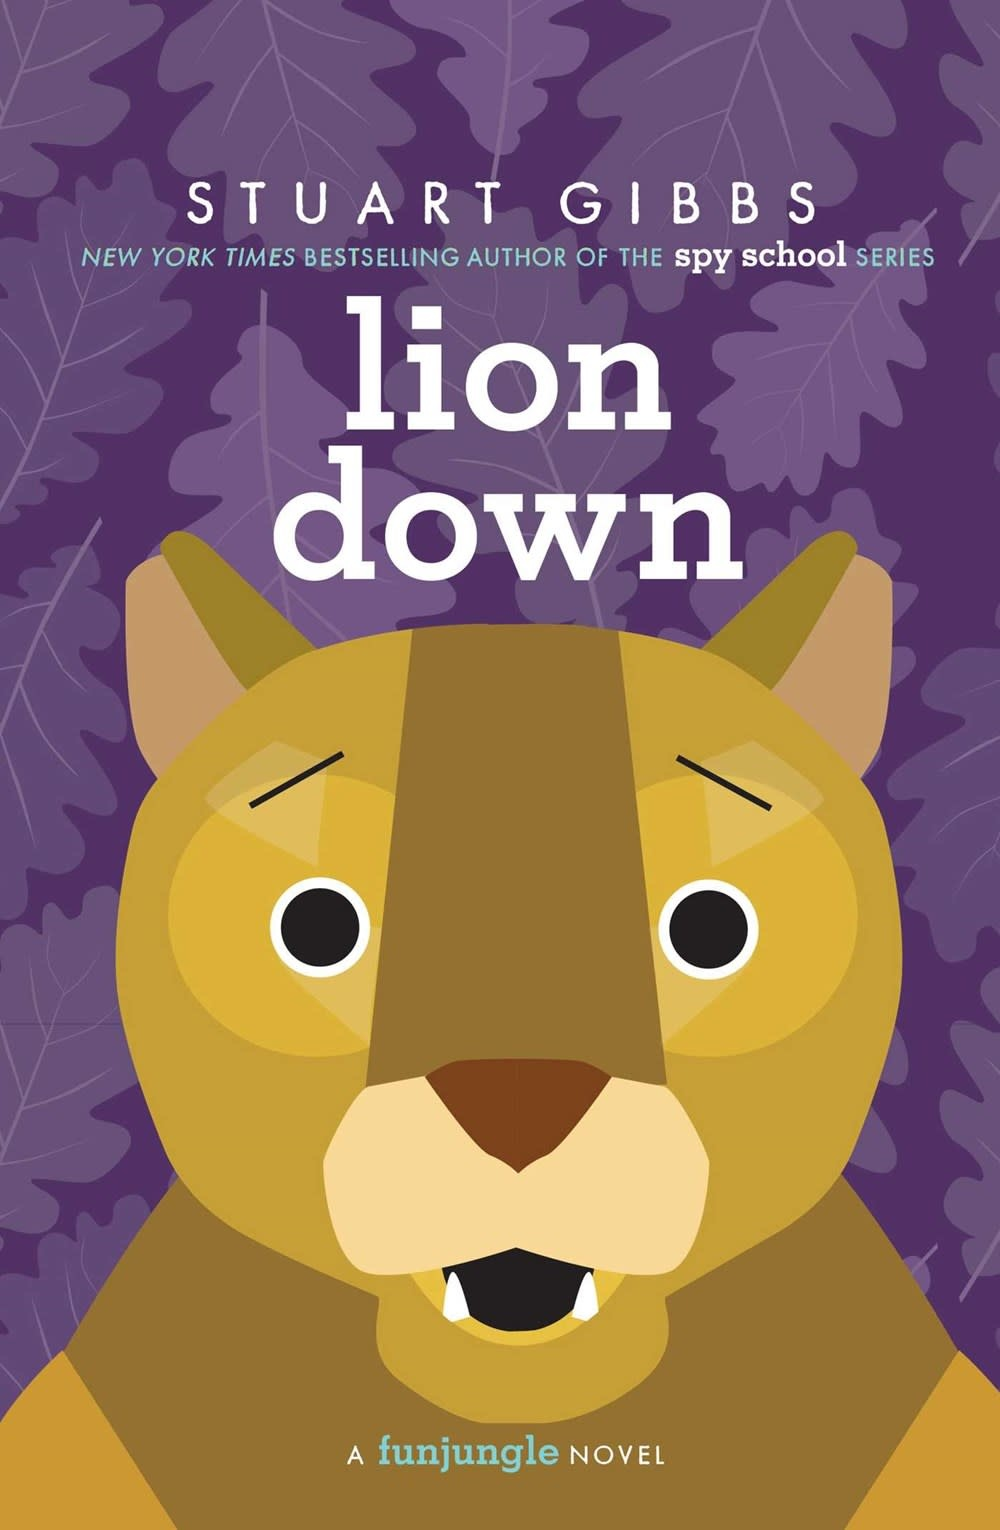 Simon & Schuster Books for Young Readers Funjungle 05 Lion Down